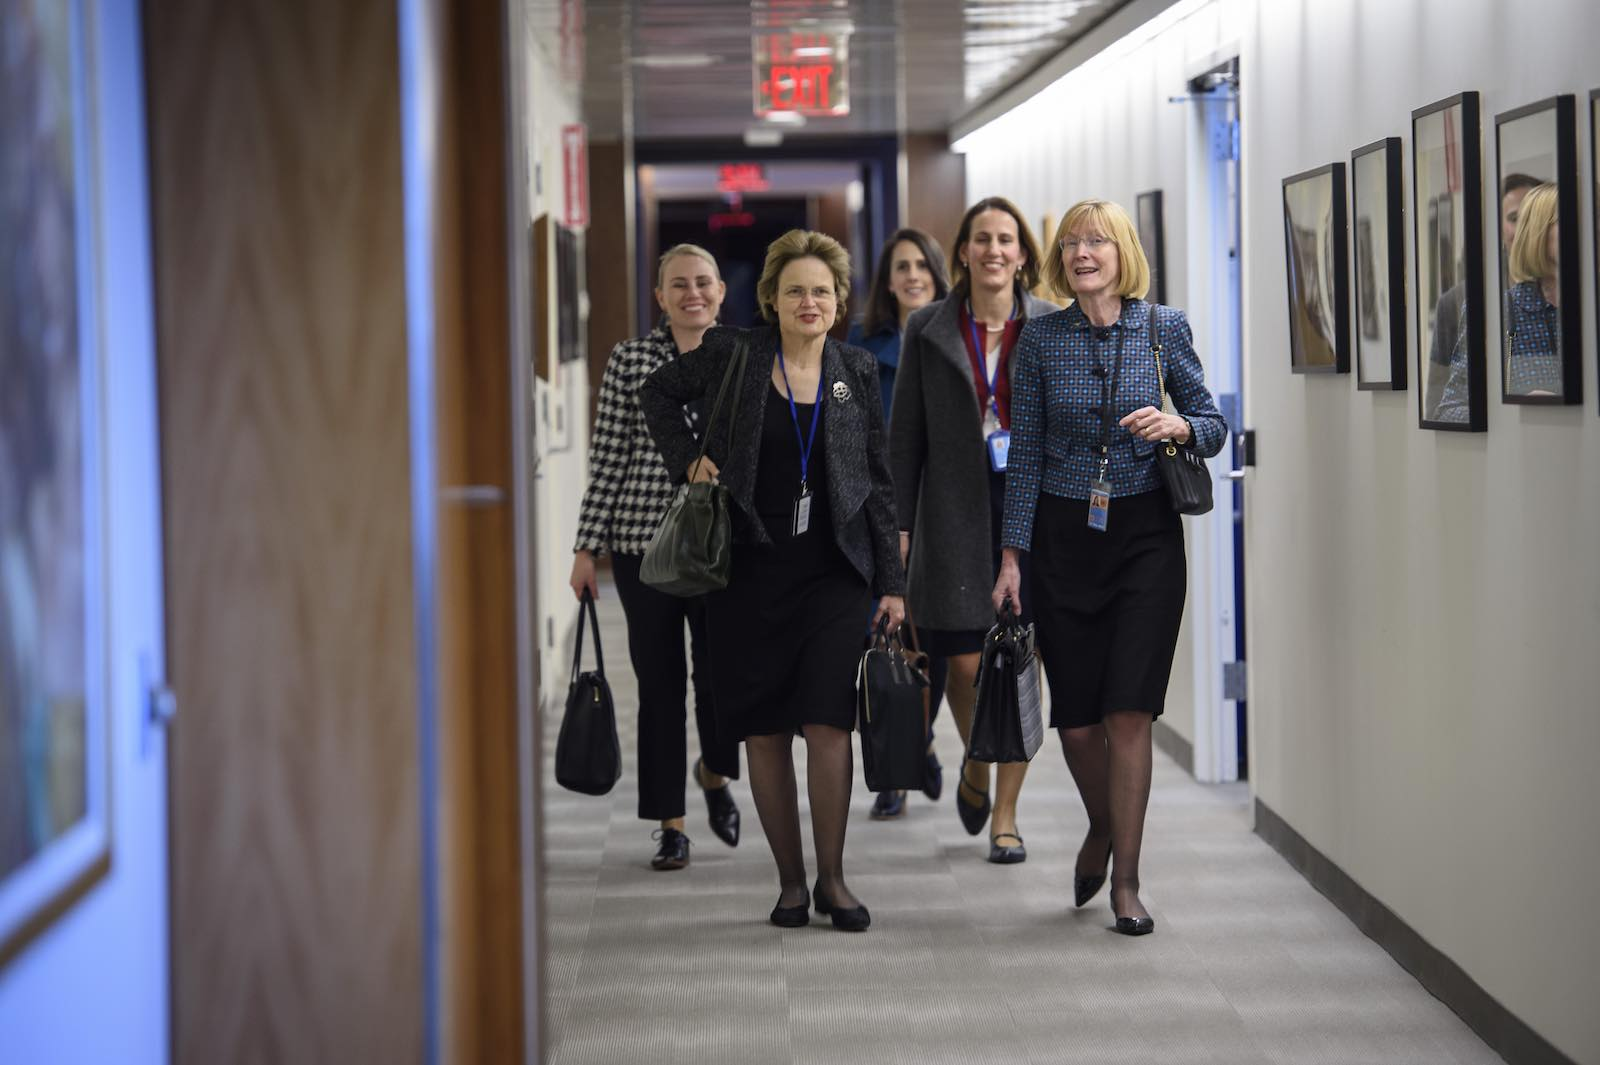 Frances Adamson (front left), Secretary of Australia's Department of Foreign Affairs and Trade, alongside Australia's permanent representative to the UN Gillian Bird, at UN headquarters in March (Photo: Loey Felipe/United Nations)